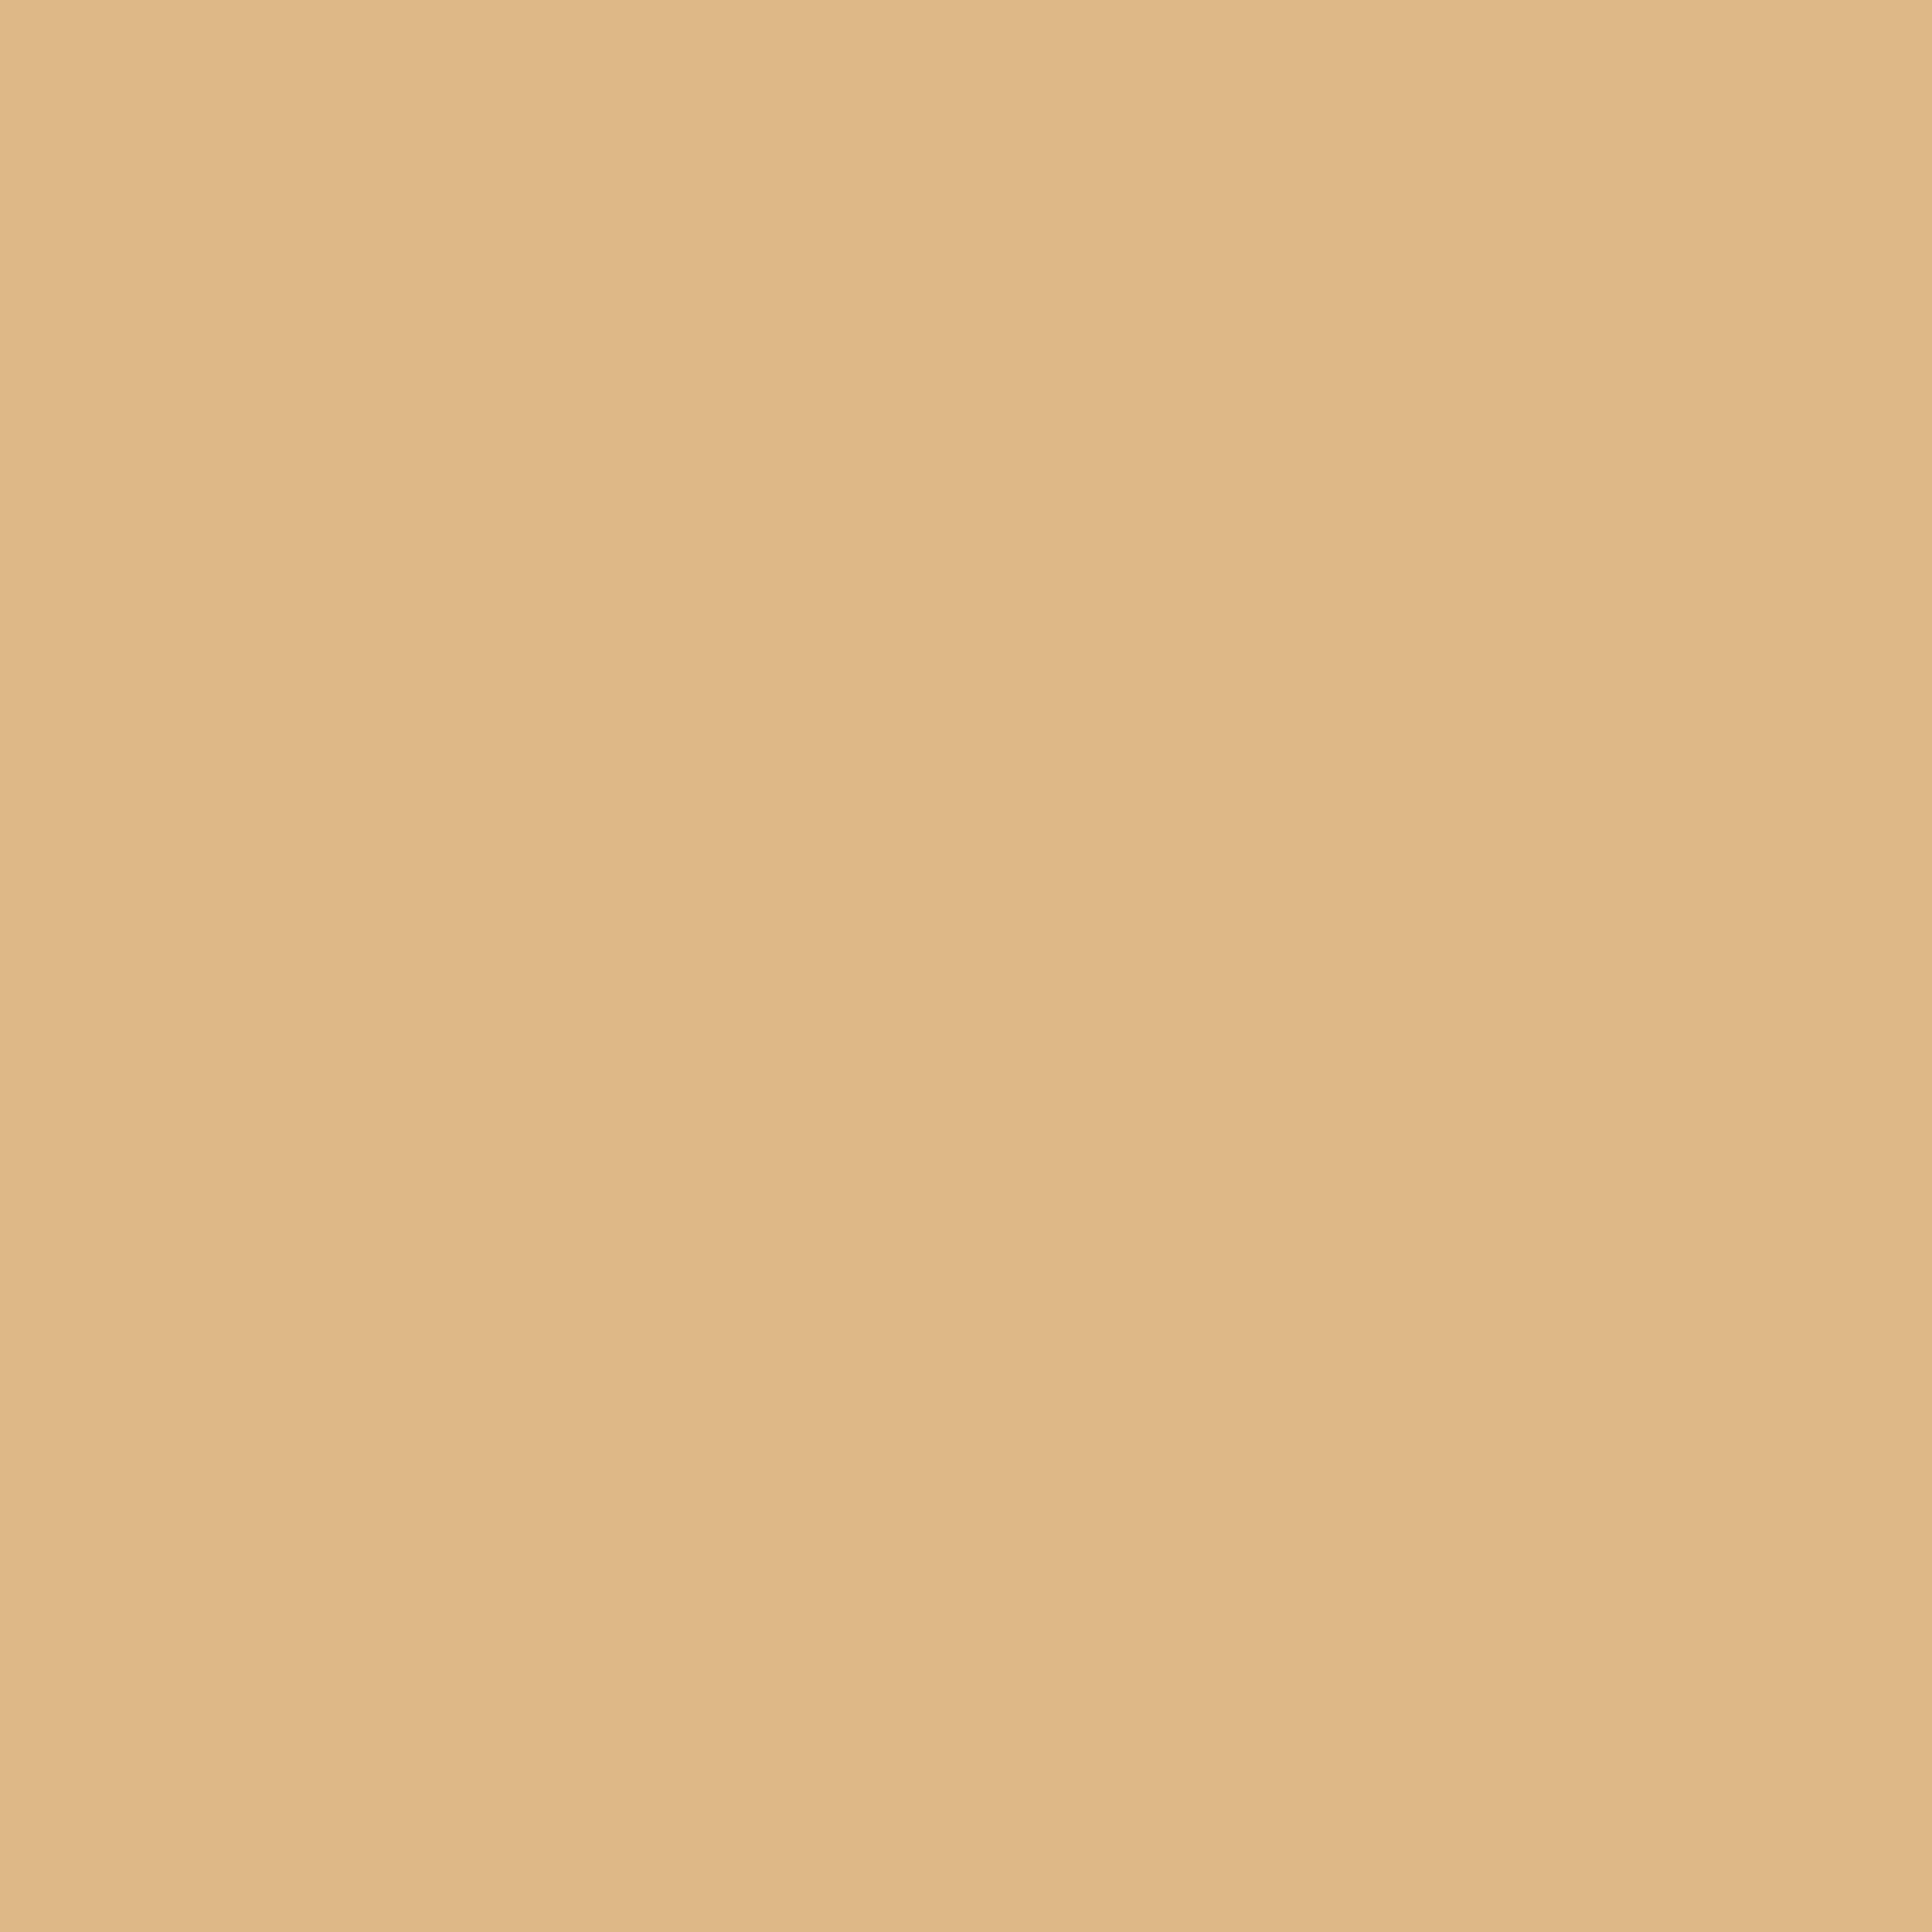 3600x3600 Burlywood Solid Color Background